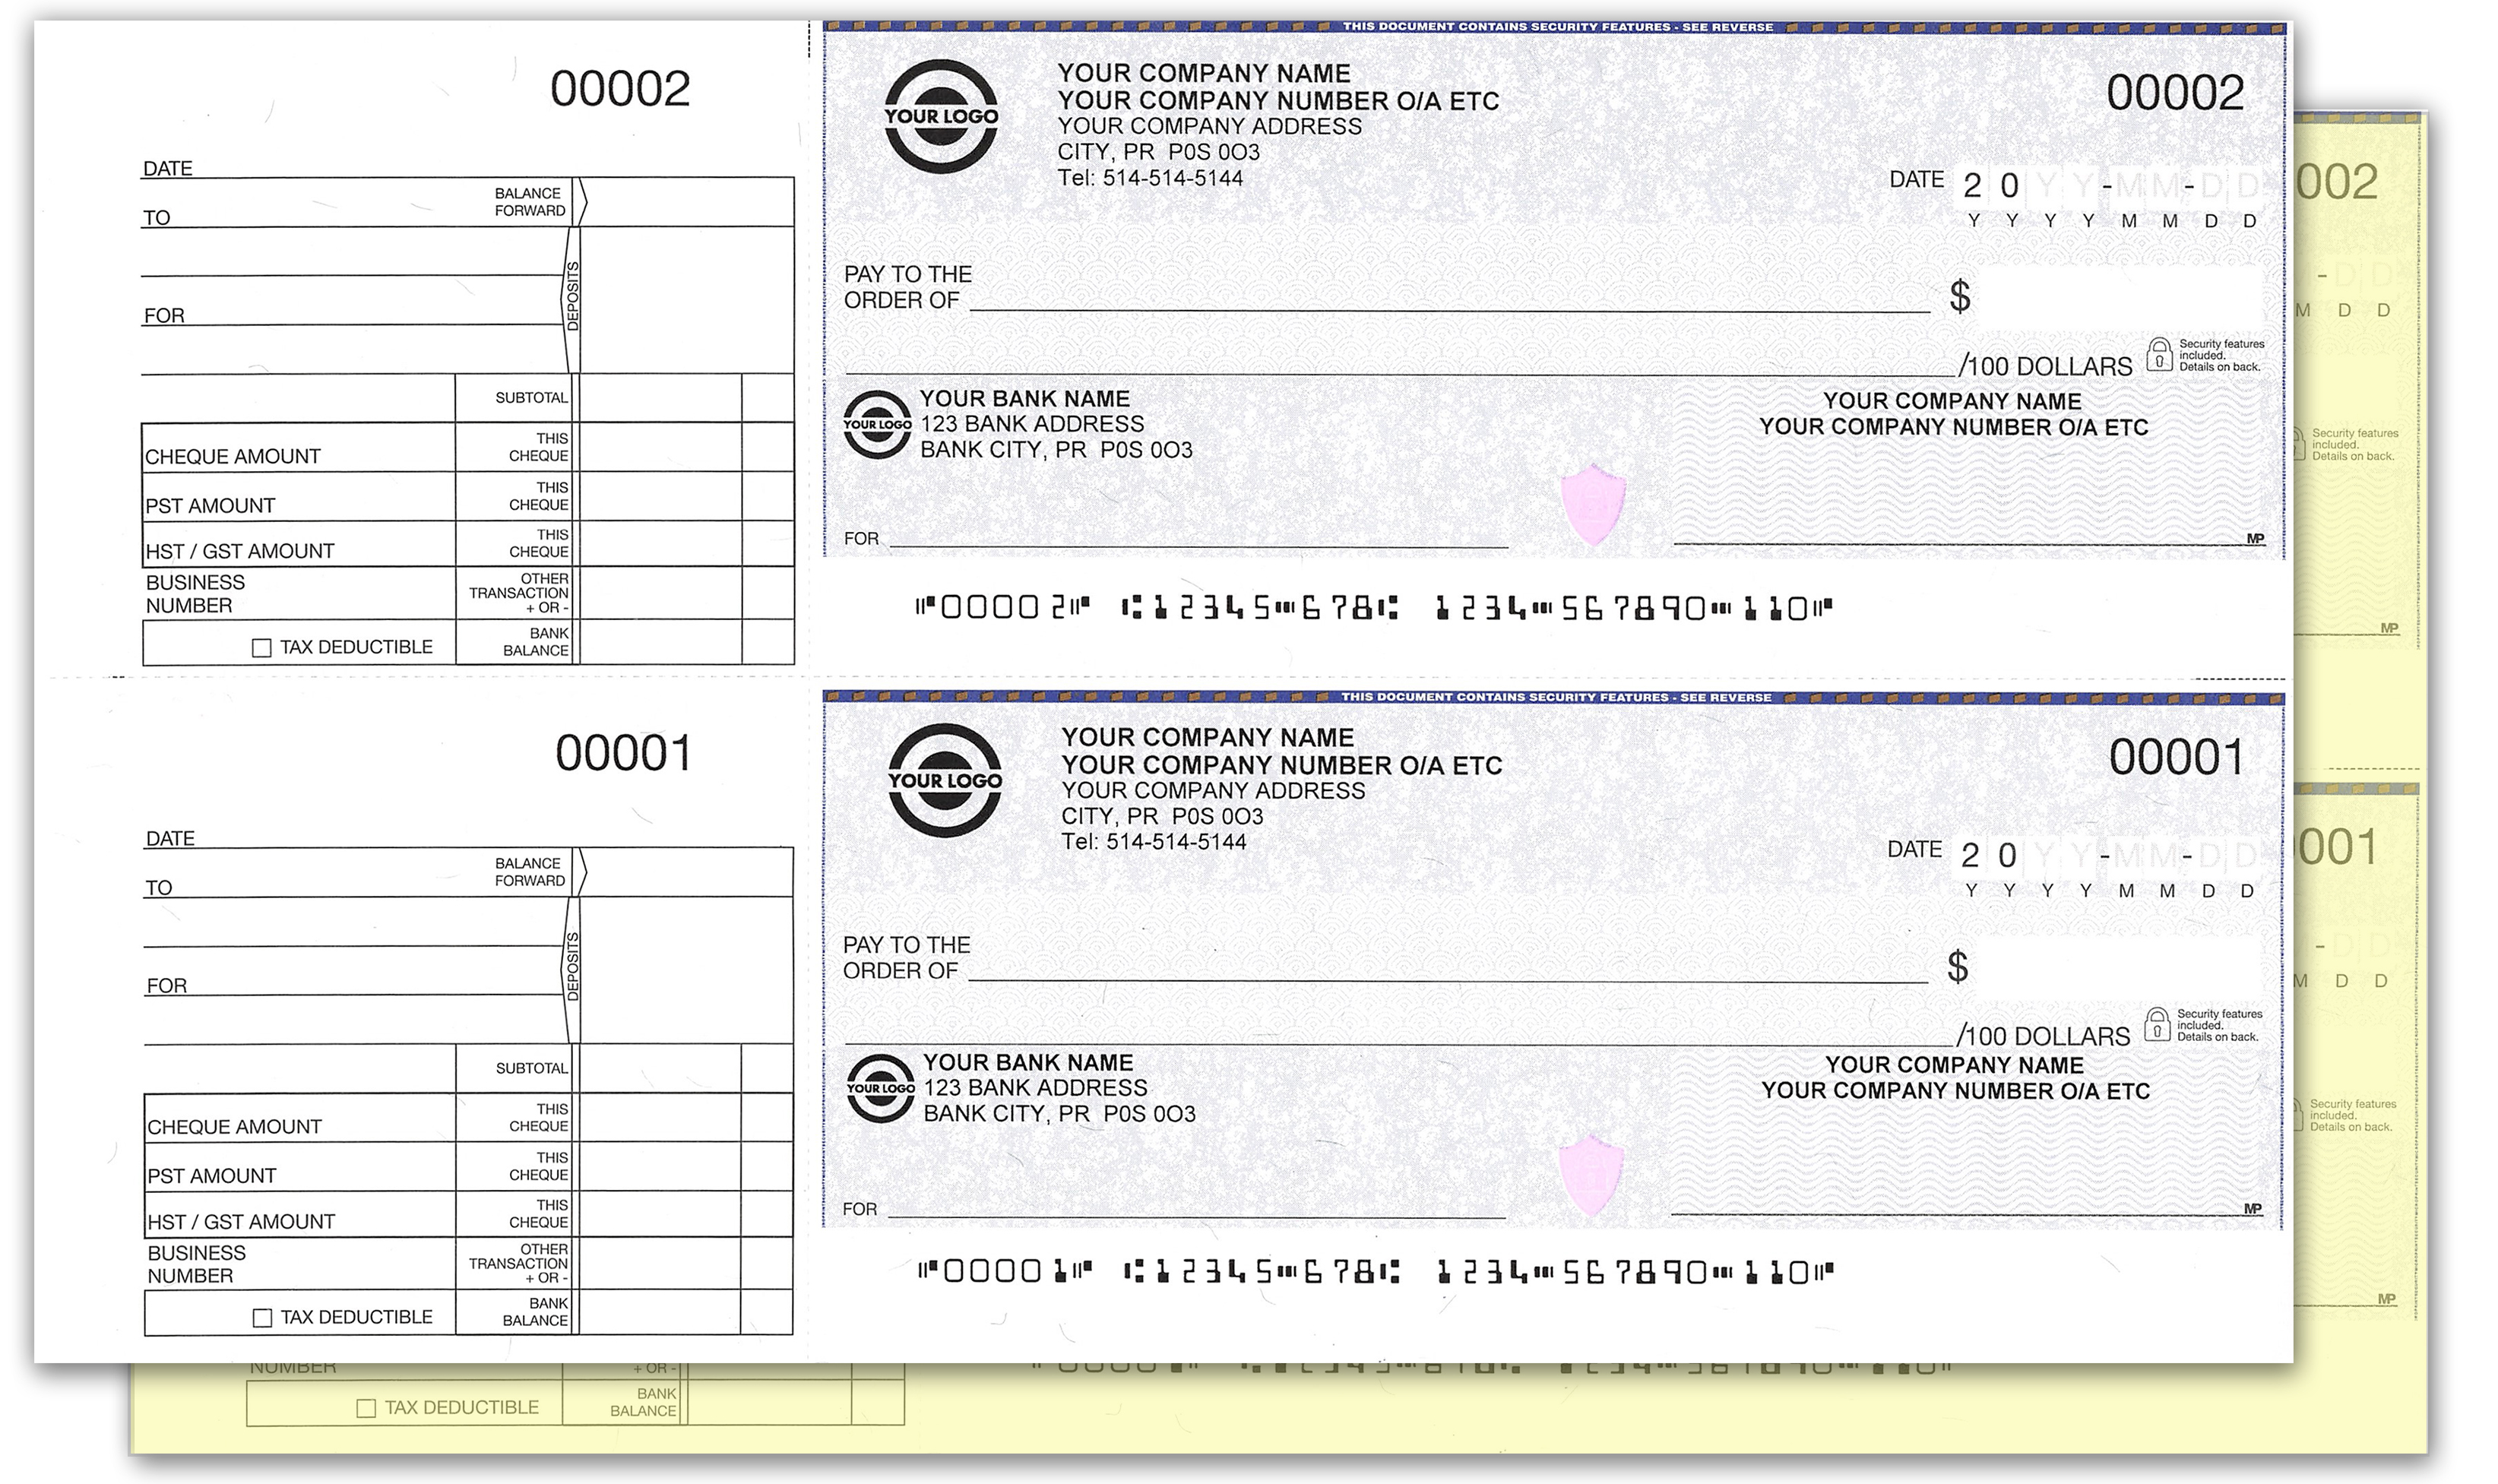 2 (carbon) Copy High Security Manual Cheques